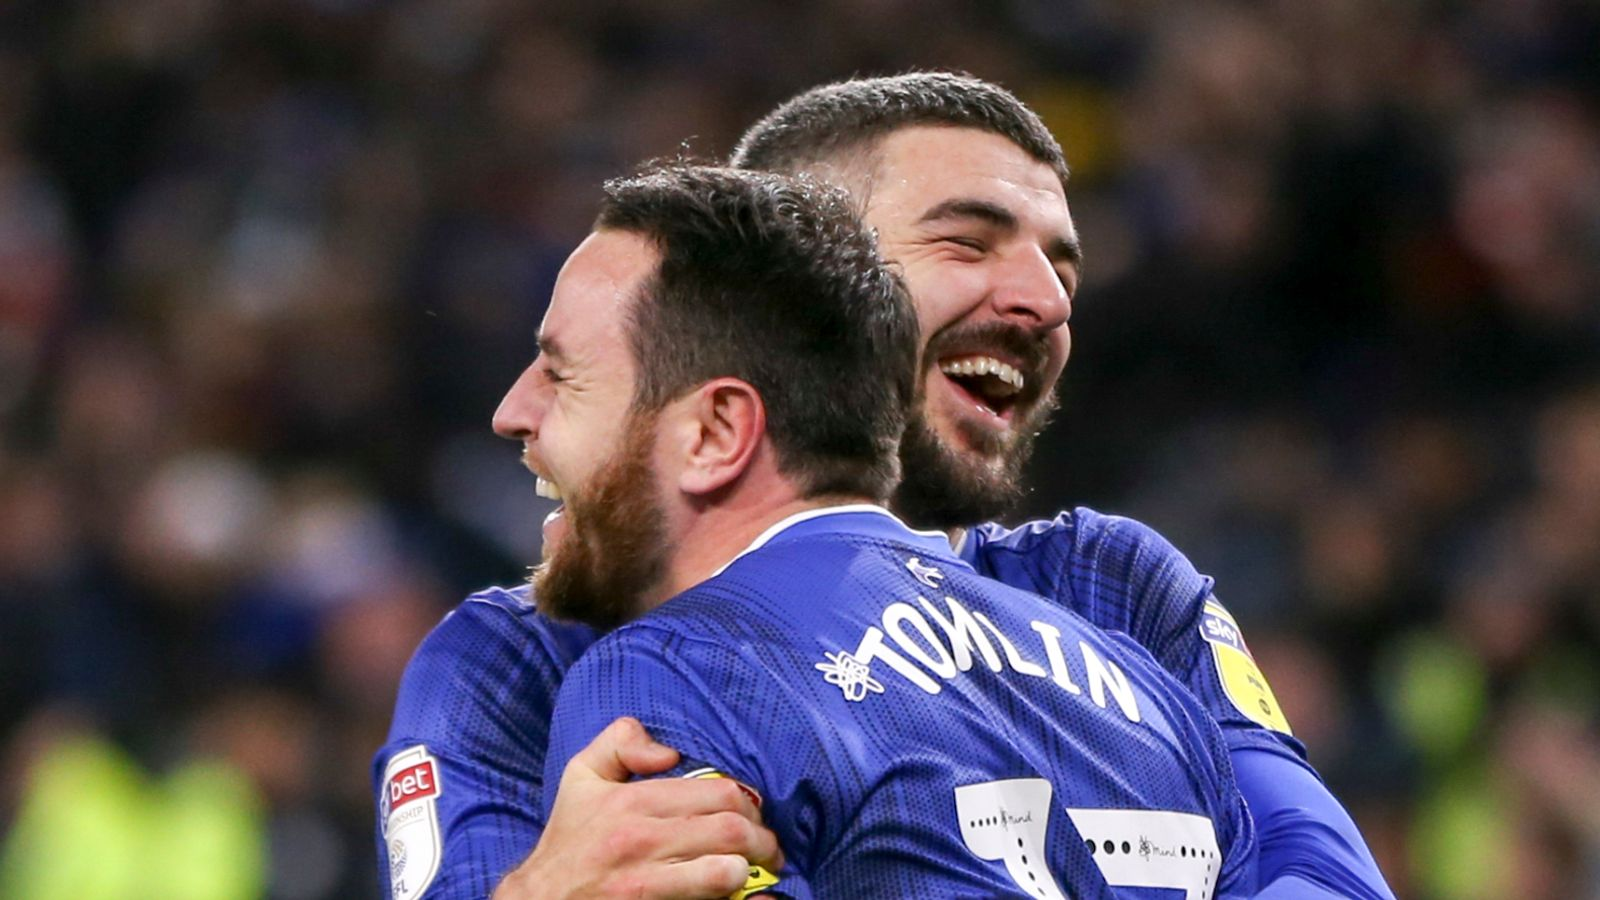 Cardiff 2-1 West Brom: Lee Tomlin free-kick fires Bluebirds to victory as Baggies are knocked off top